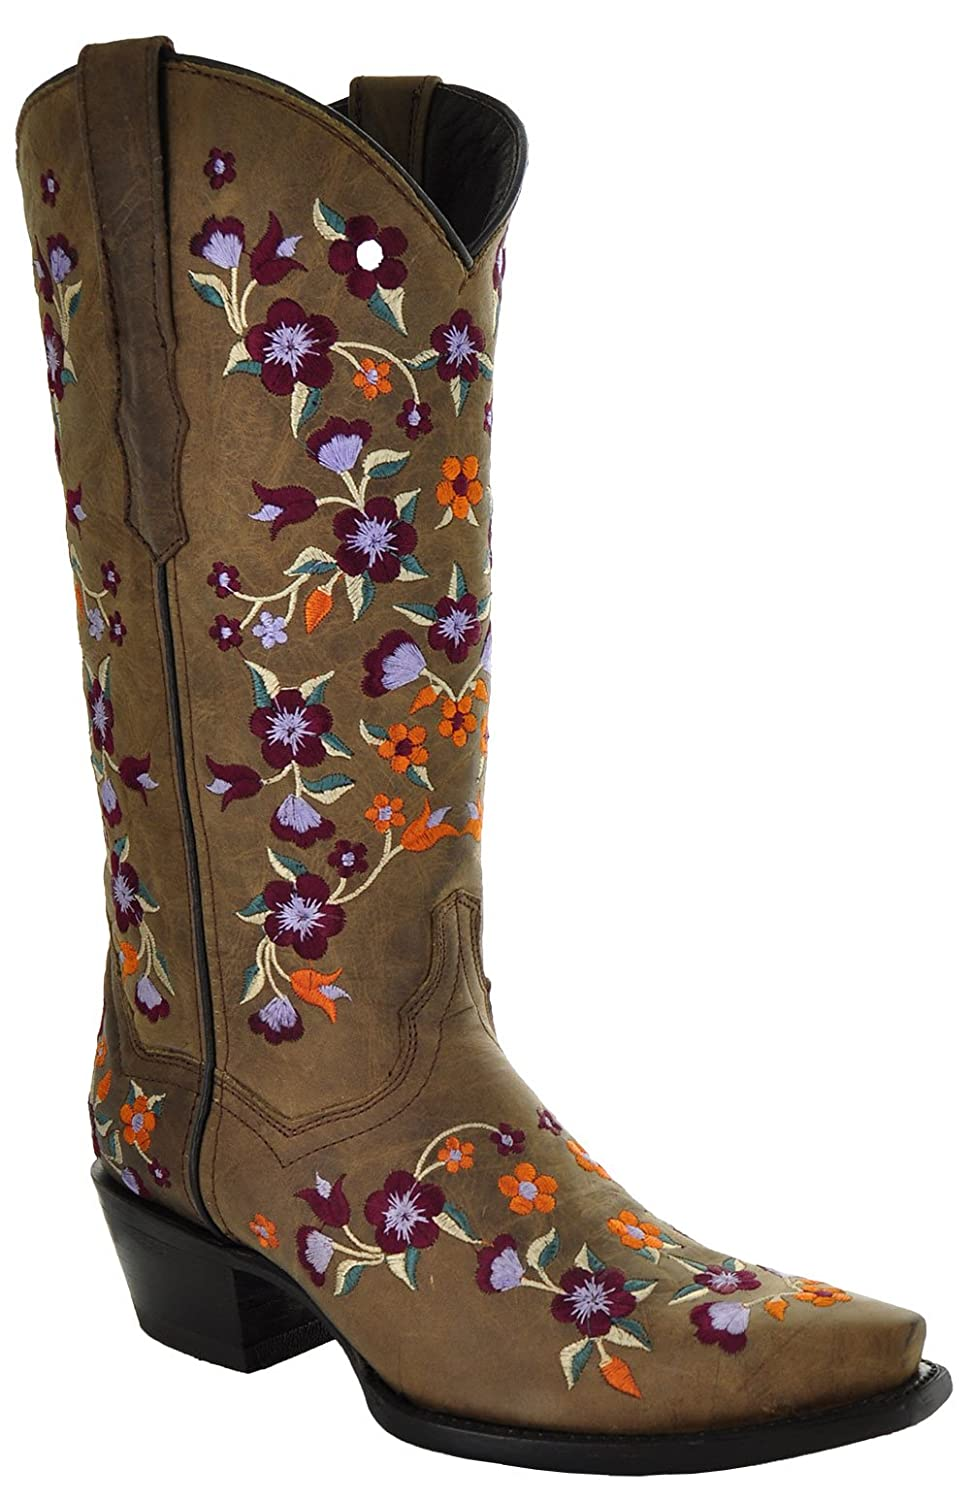 Soto Boots Floral Fantasy Cowgirl Fashion Boots by M50031 B075VGZGG6 6 B(M) US